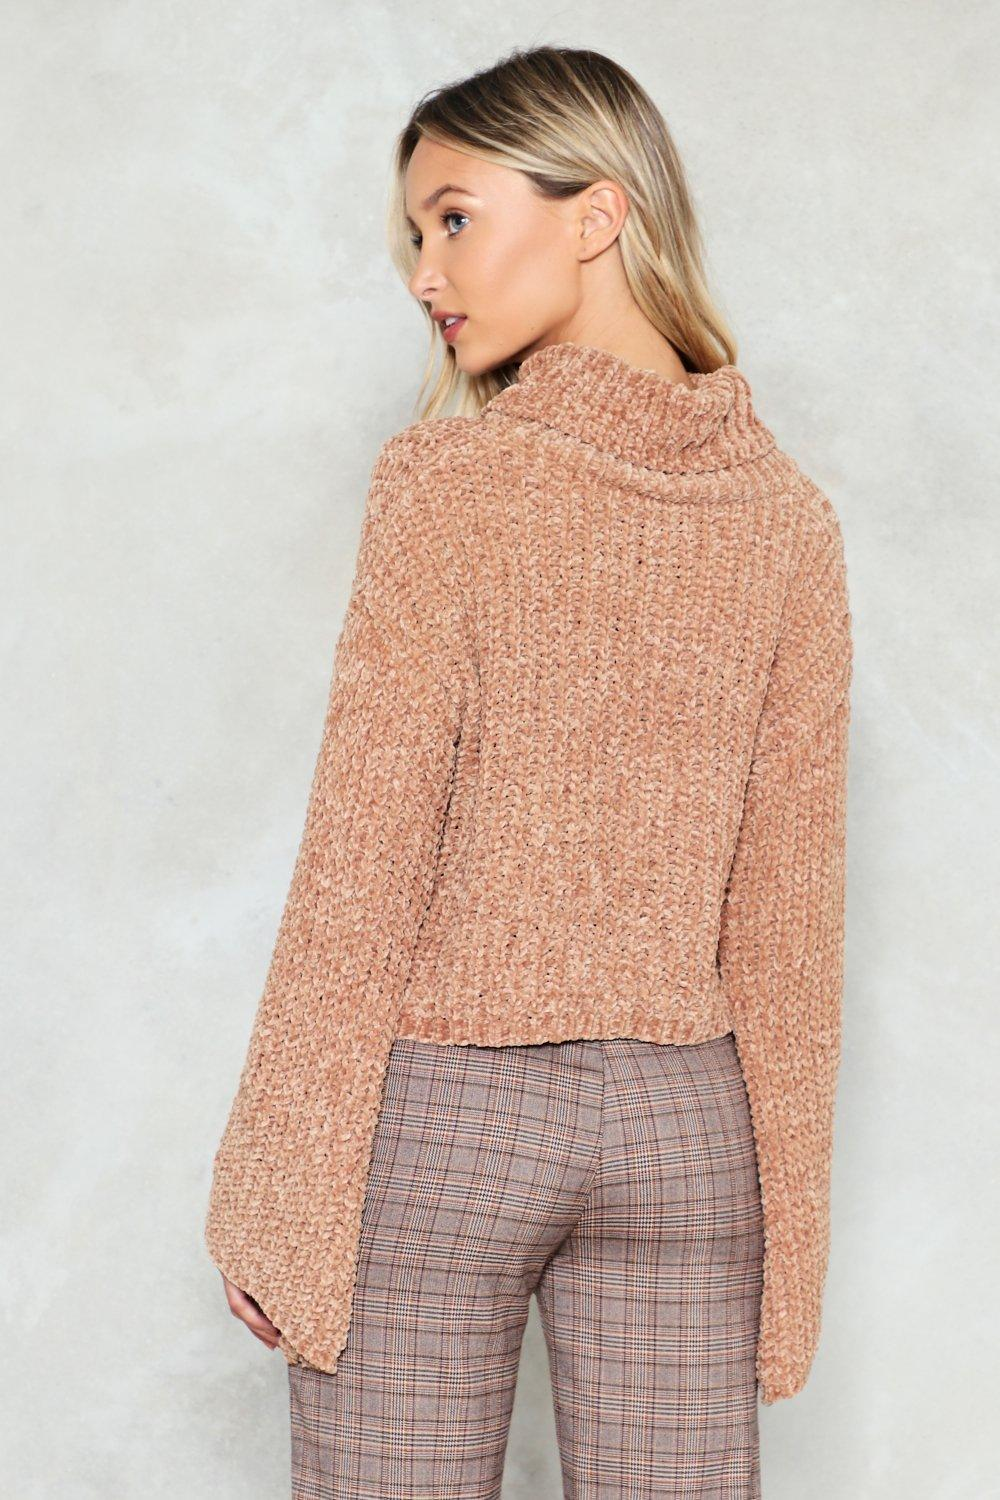 8feebea30 Womens Camel Knit Guilty Chenille Sweater. Hover to zoom